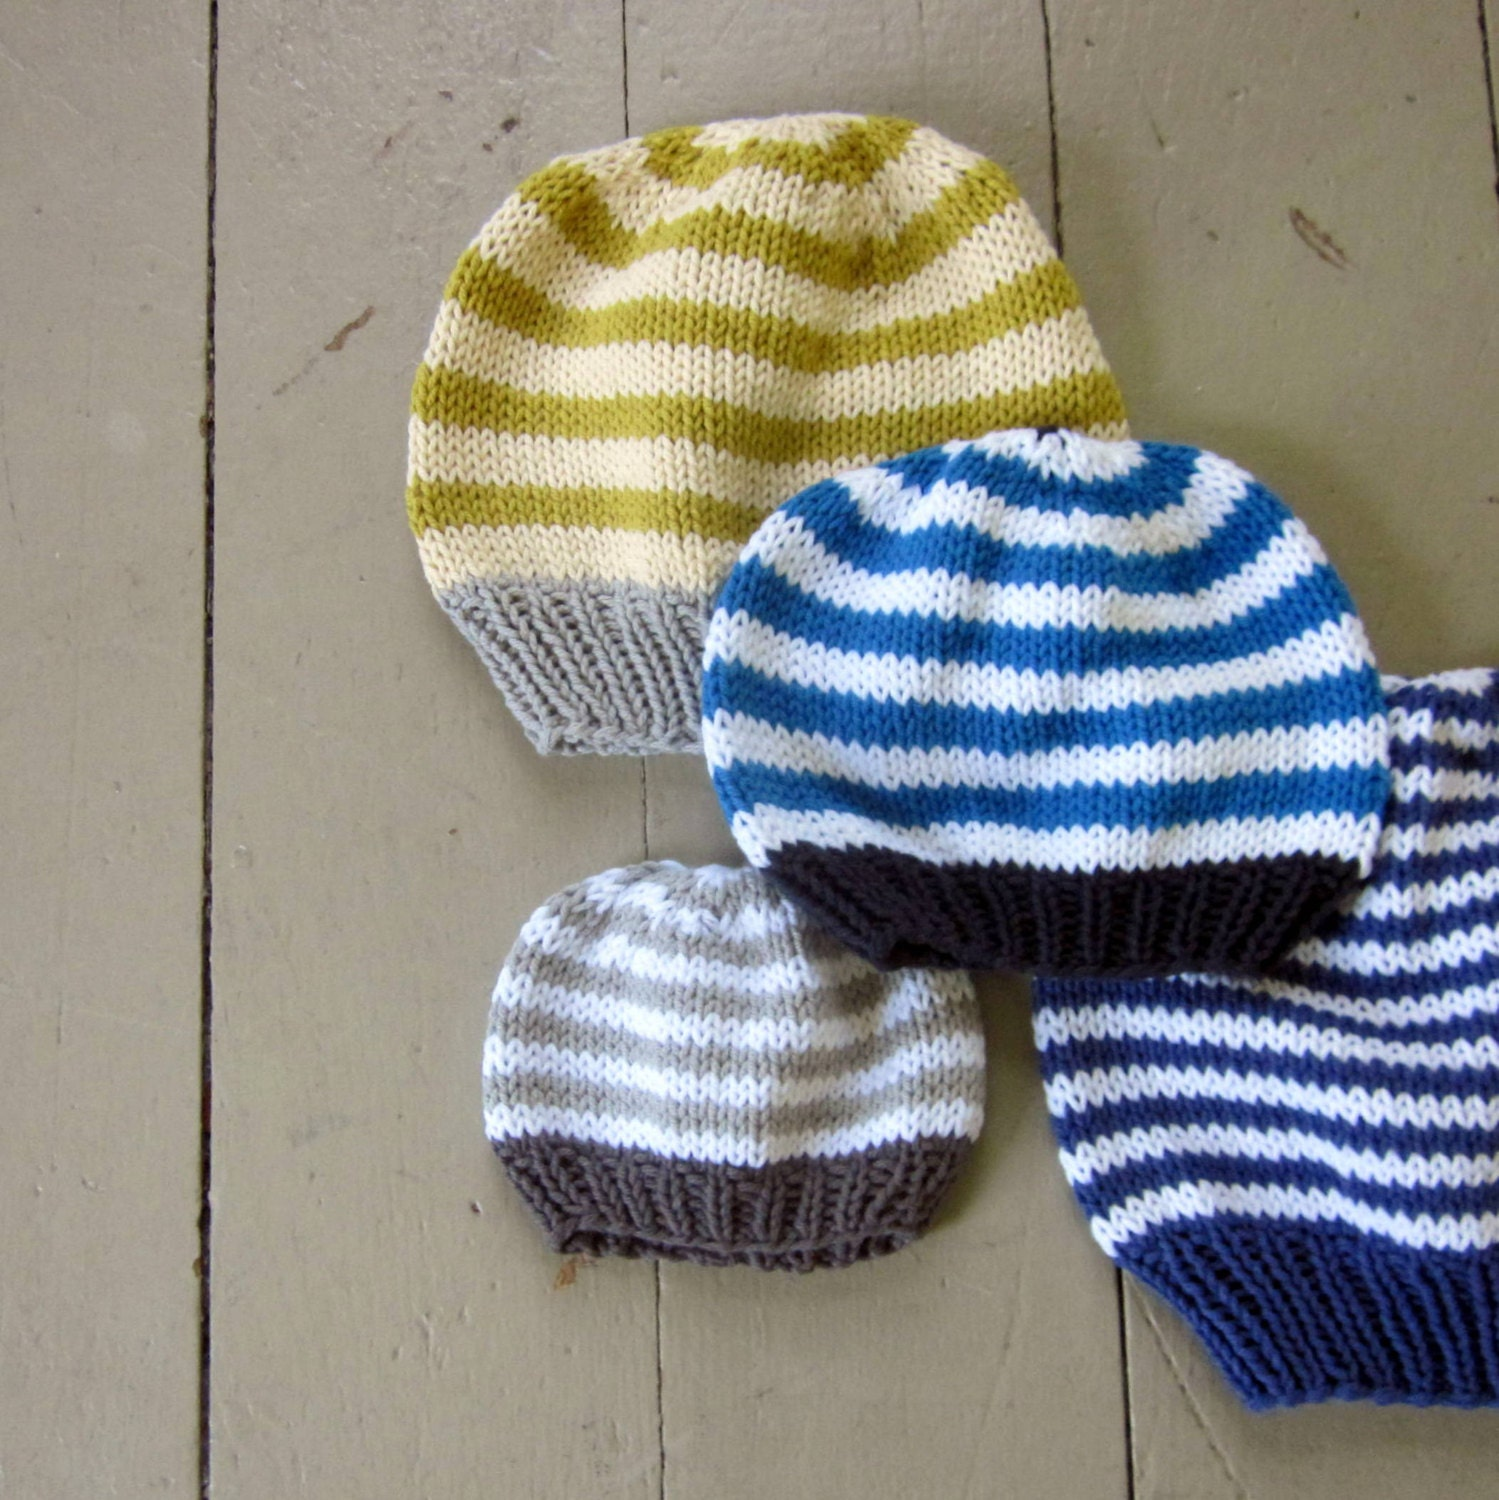 Baby Boy Hat Knitting Pattern : Pattern, basic hat knitting pattern, PDF knitted hat ...